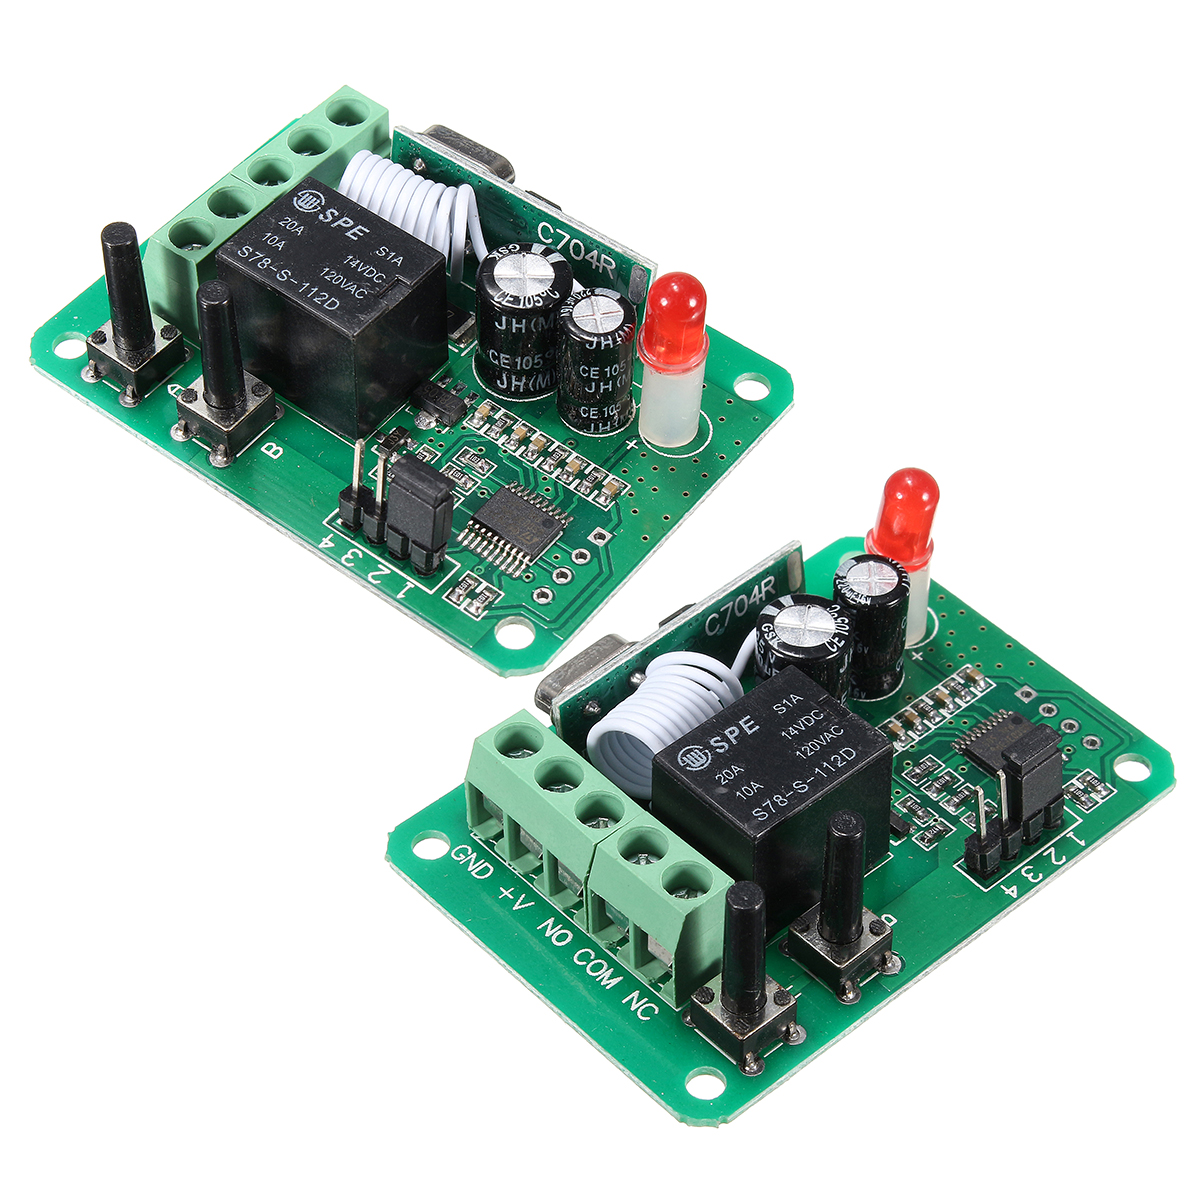 Dc12v 1ch 315 433mhz Wireless Time Delay Relay Rf Remote Control The Equipment Is Mode You Cc0f17b4 4ad7 4191 A5b9 70ce6e897461